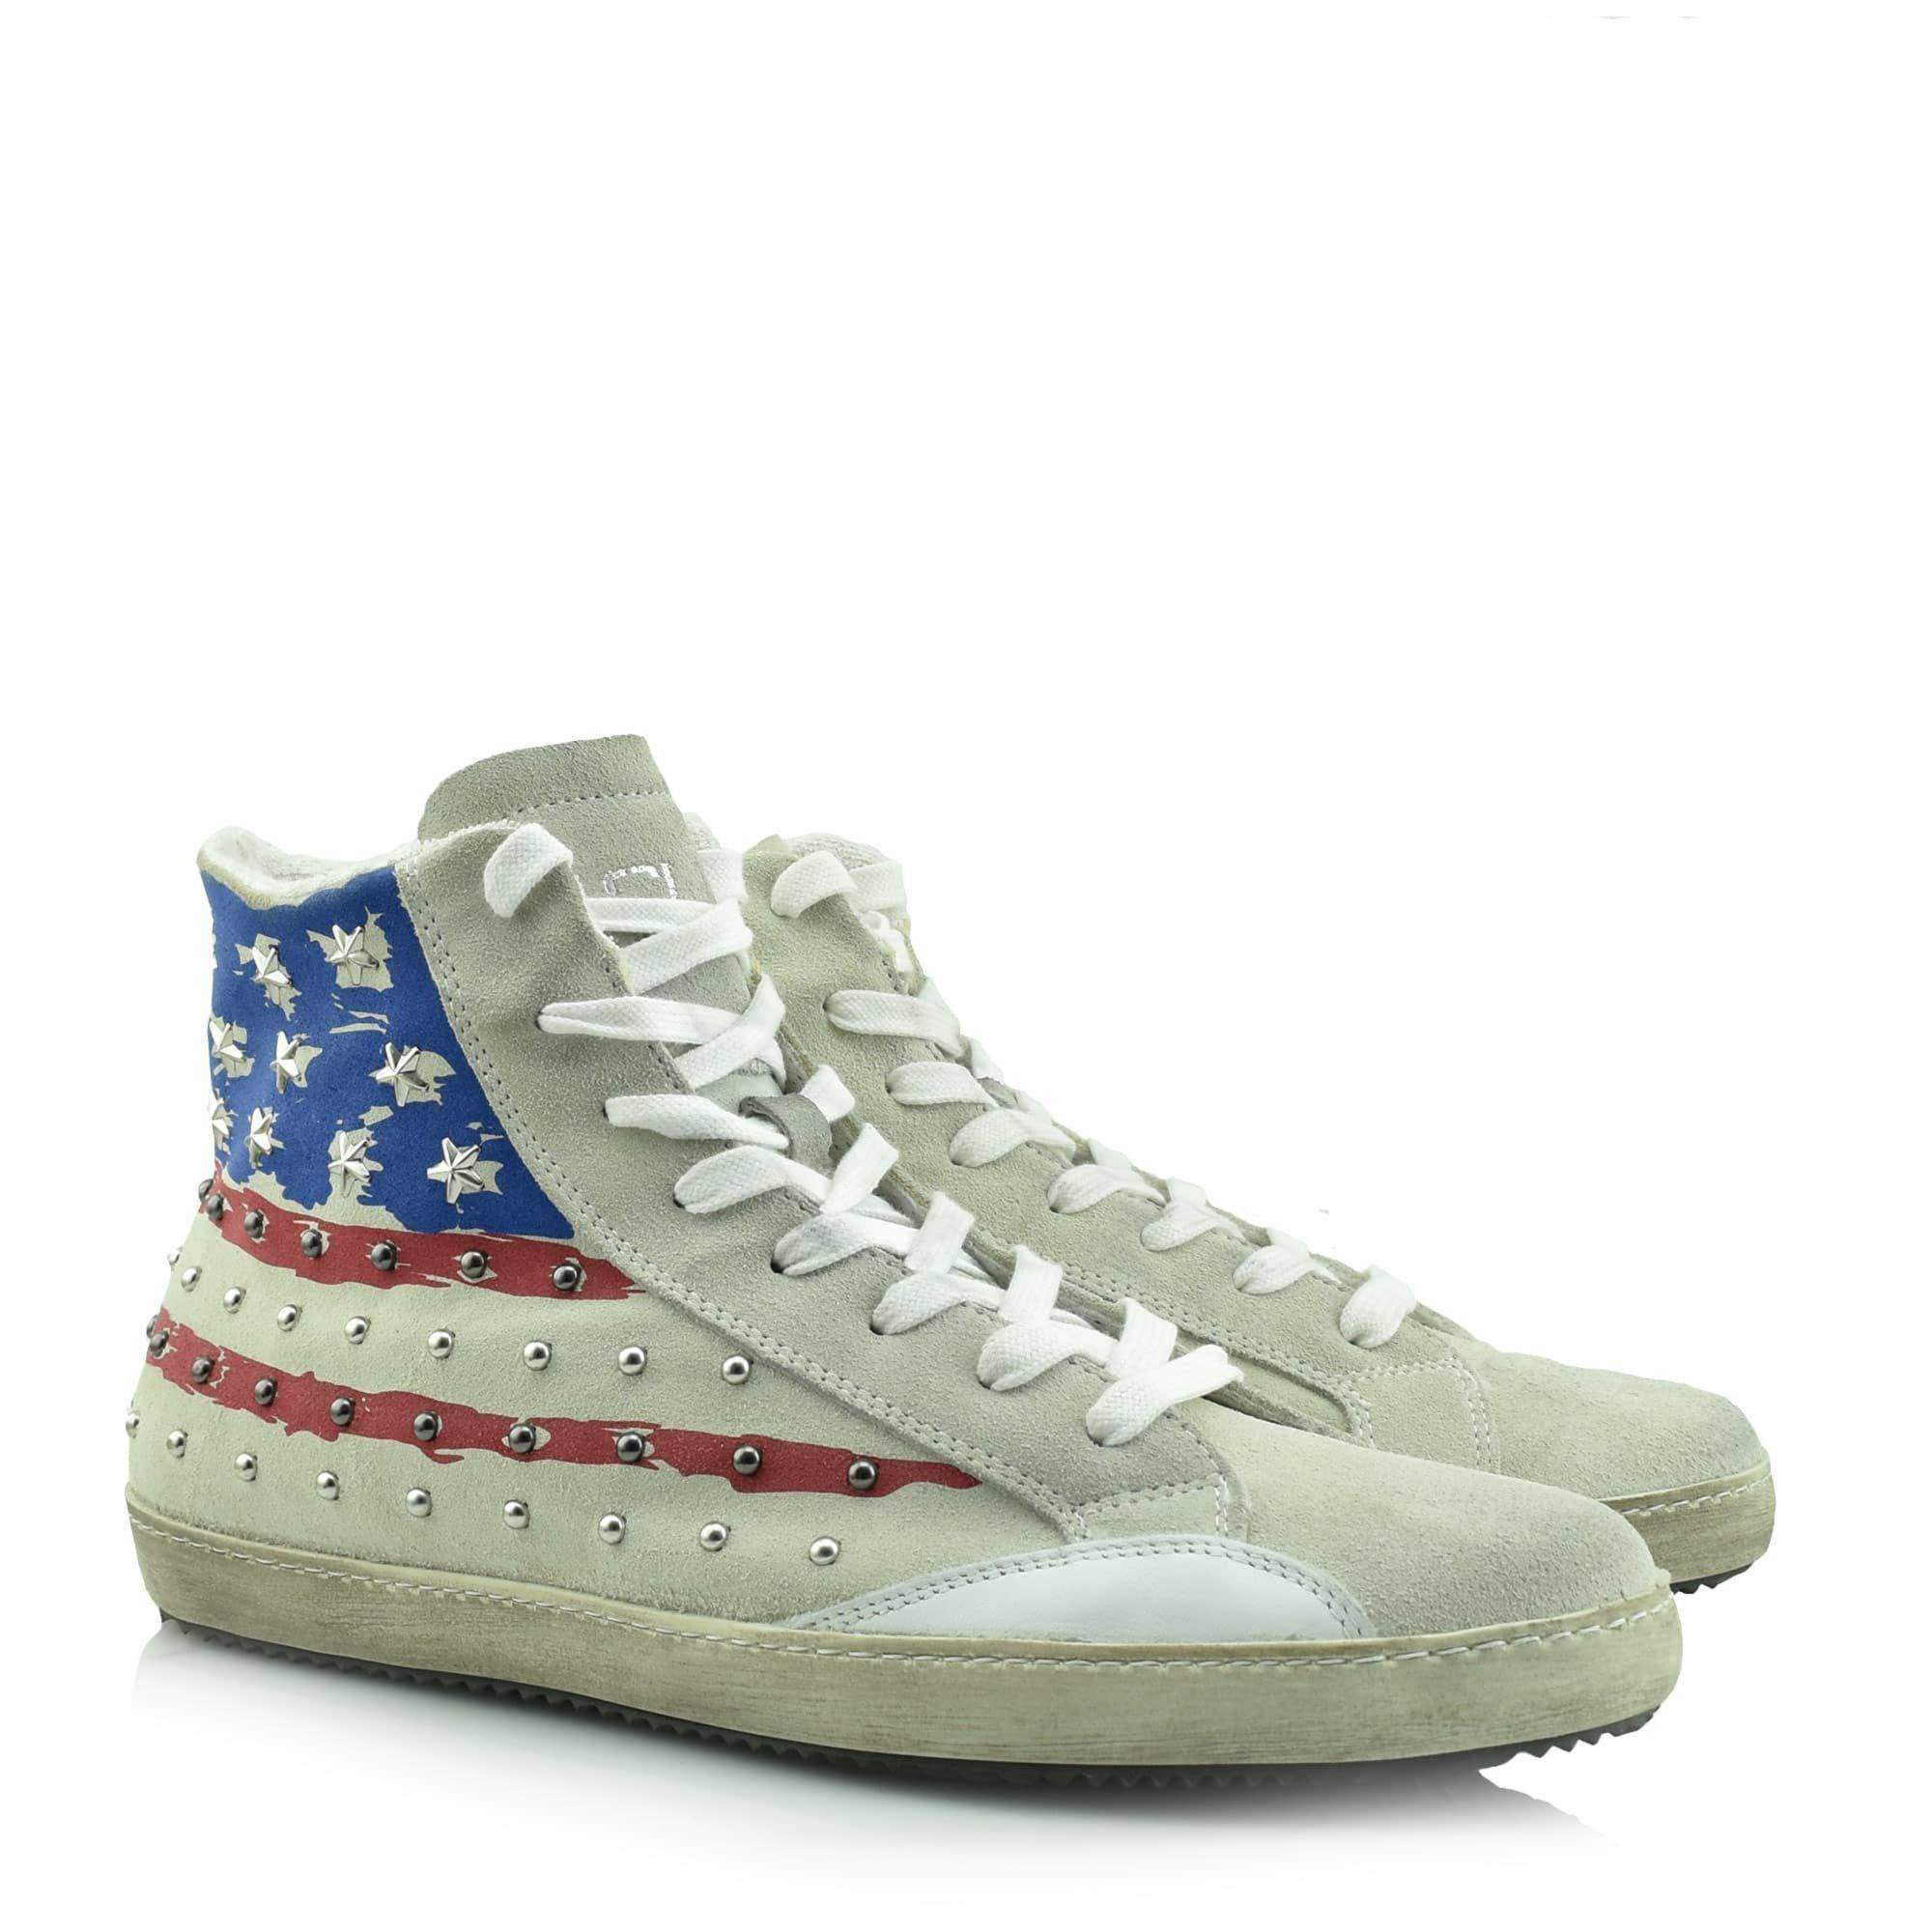 CULT USA FLAG SUEDE - CLE 101481